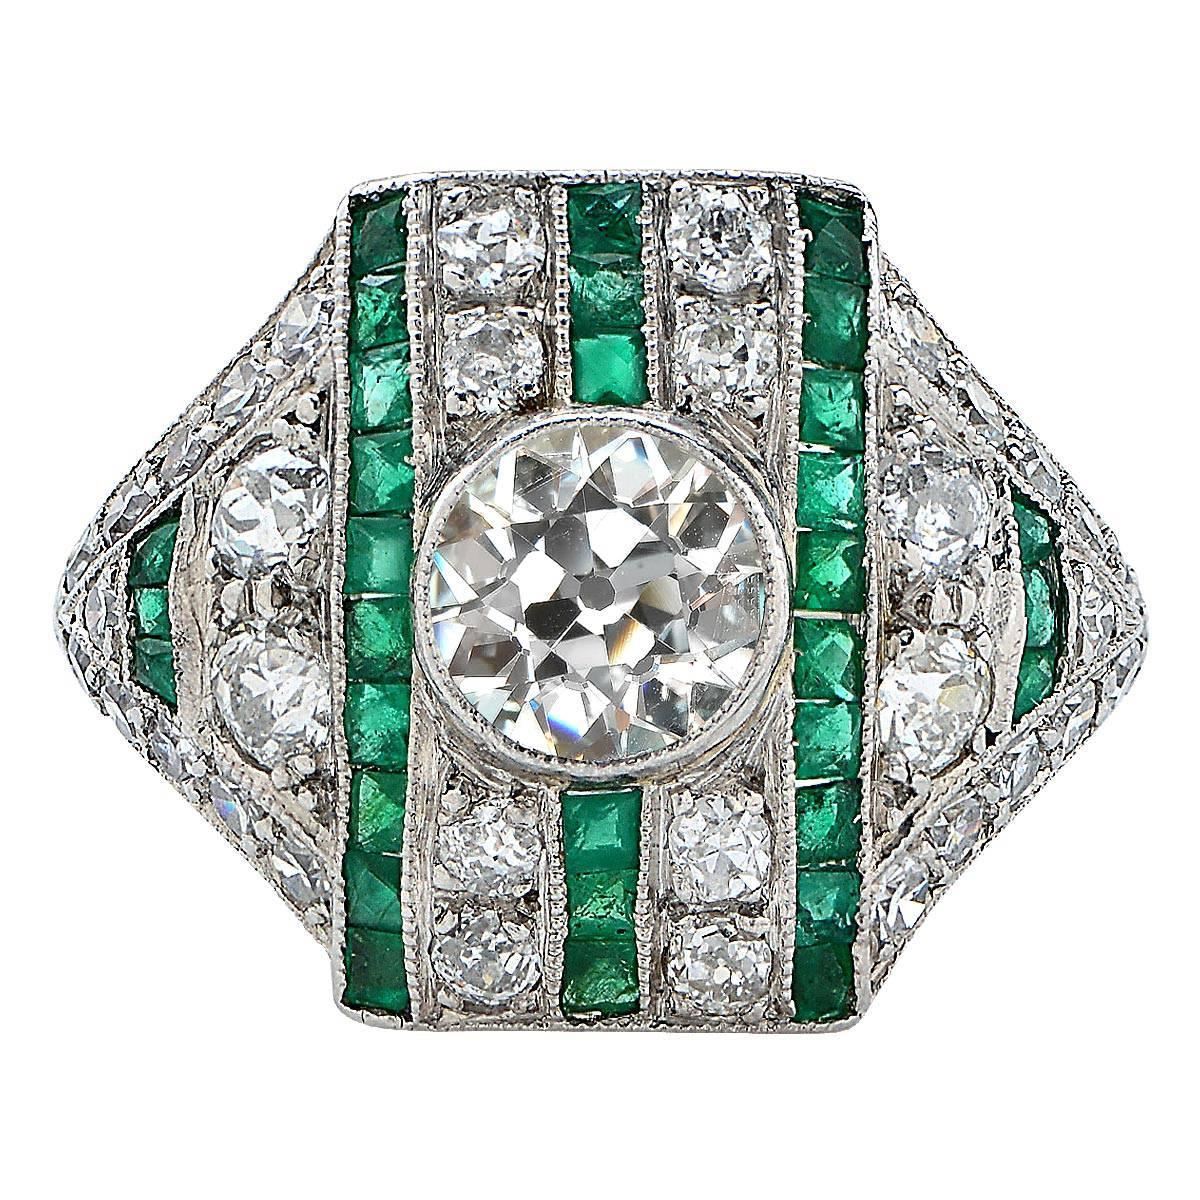 Unique Original Art Deco emerald Diamond Platinum Ring at 1stdibs